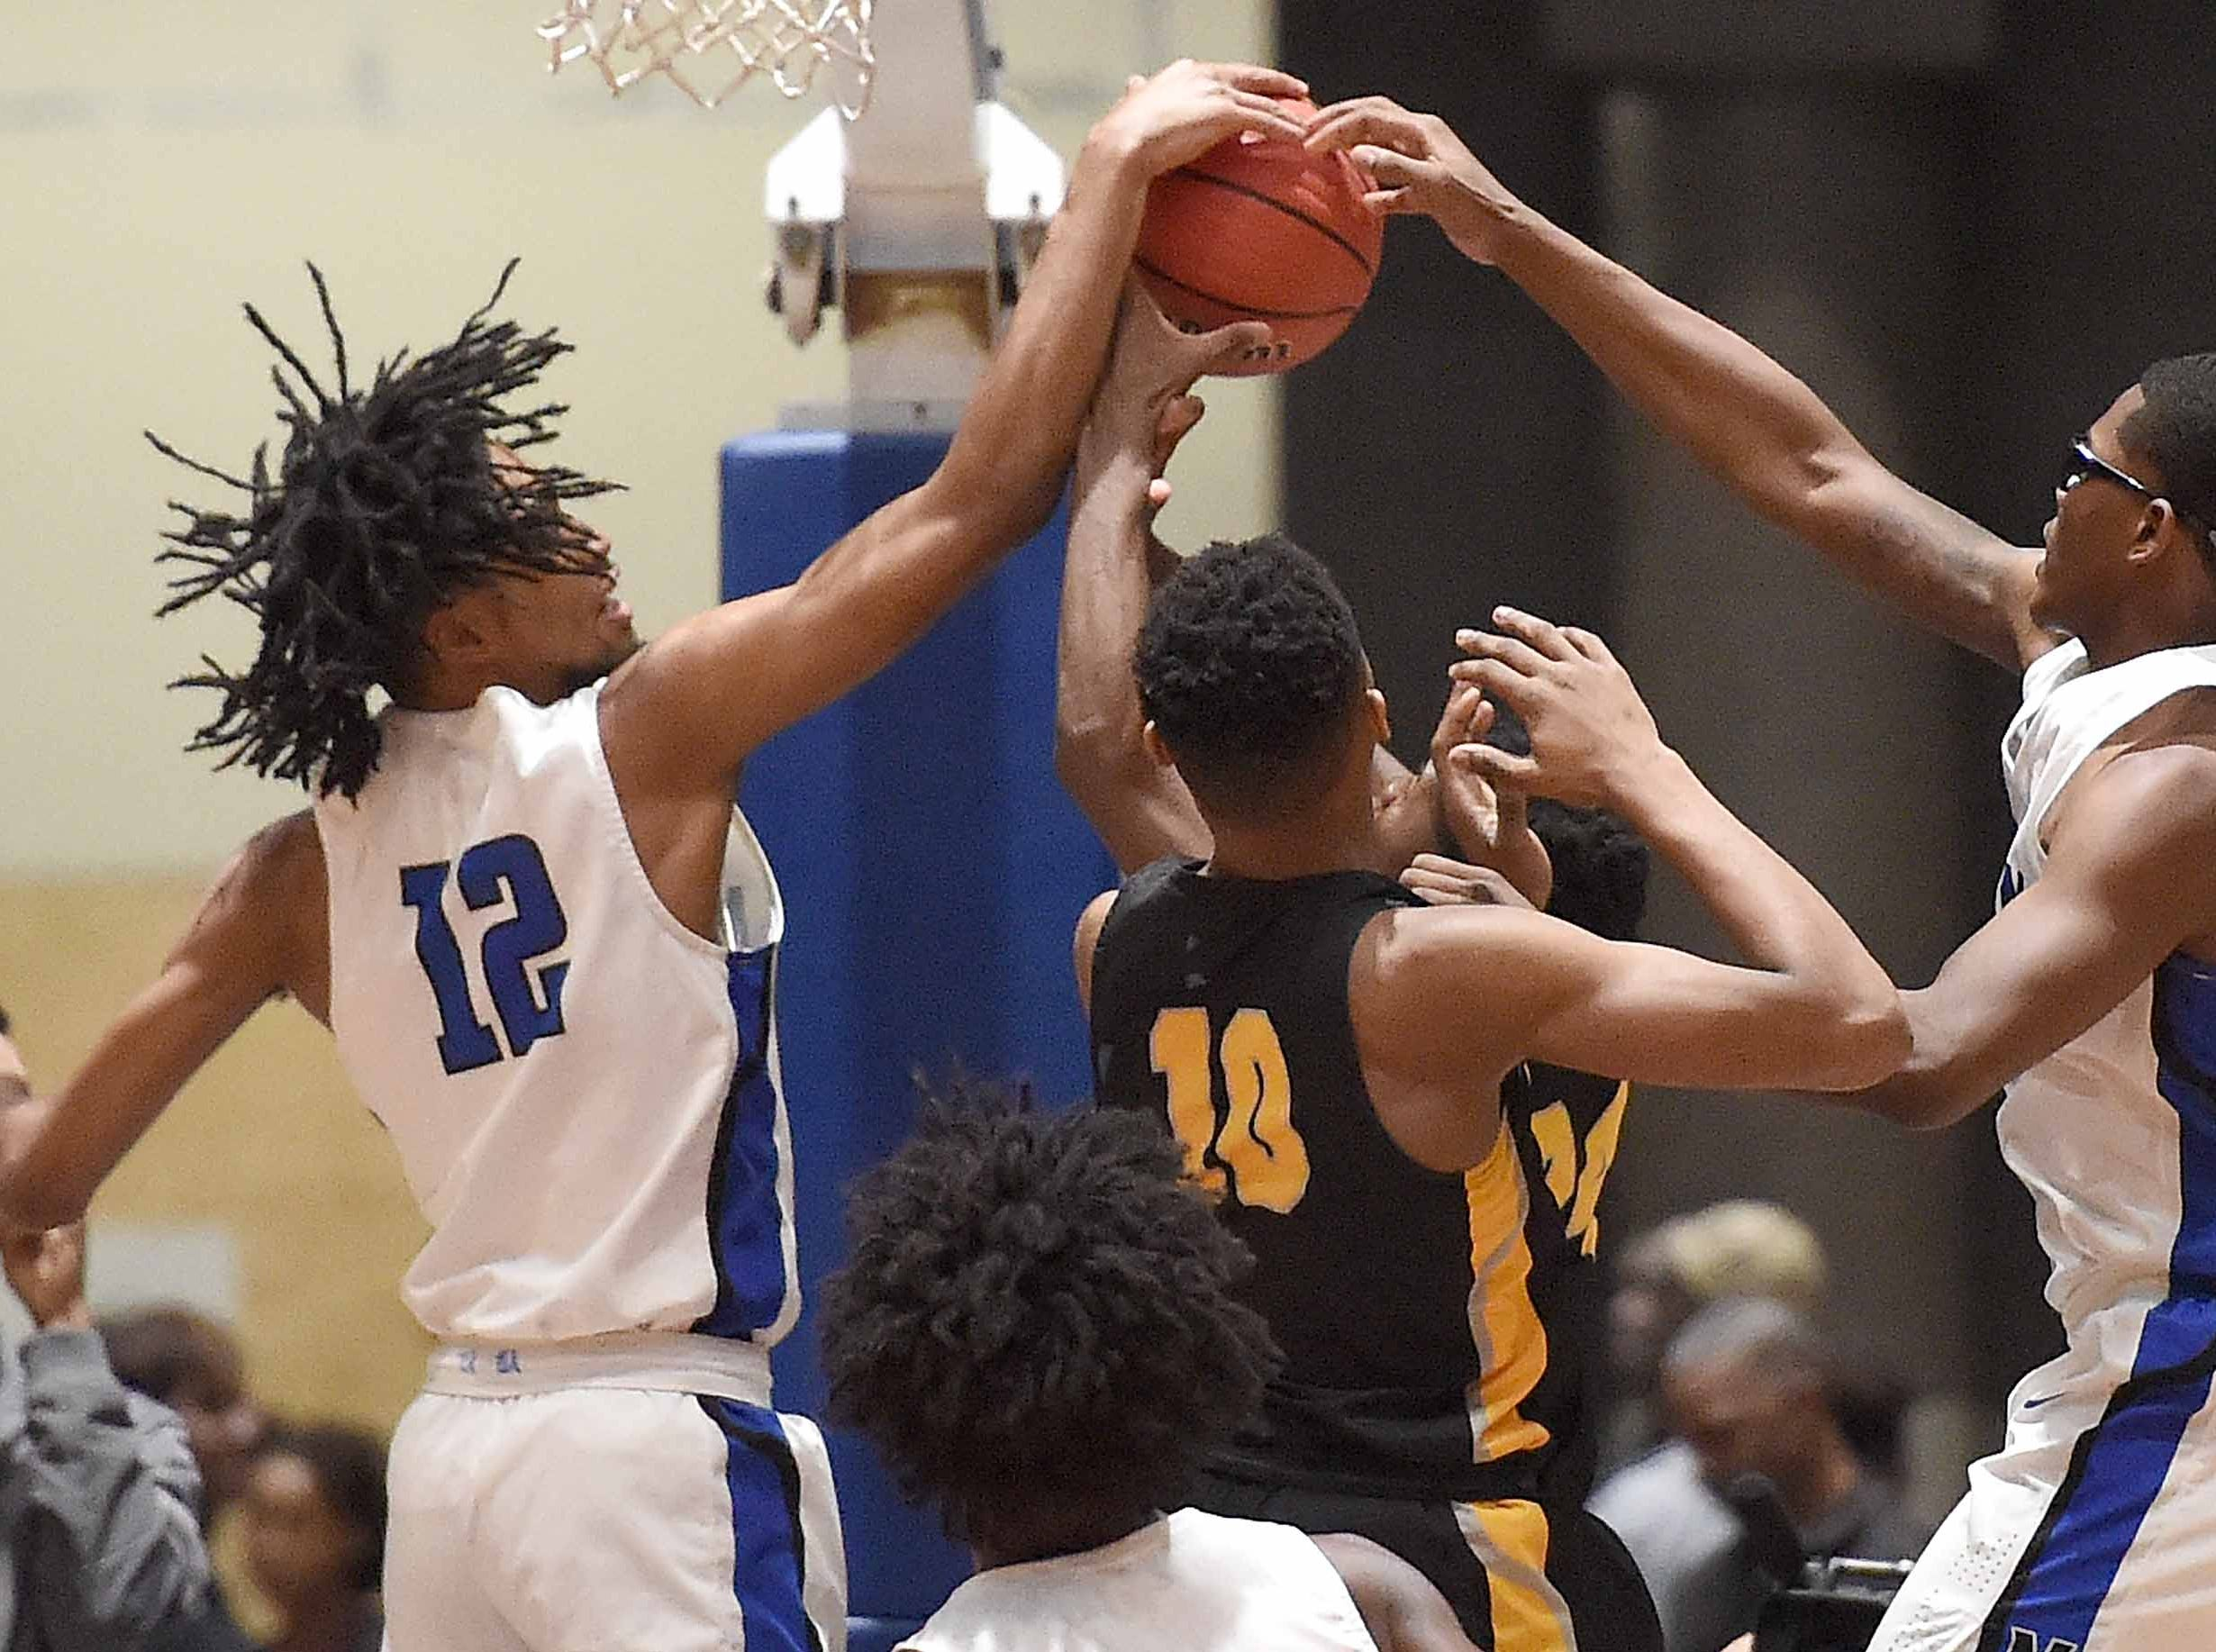 Meridian's Vontrell Pringle (12) and KeEdrick Armstead (25) team up to block a Starkville shot in the Class 6A finals of the MHSAA C Spire State Basketball Championships at the Mississippi Coliseum in Jackson, Miss., on Saturday, March 9, 2019.